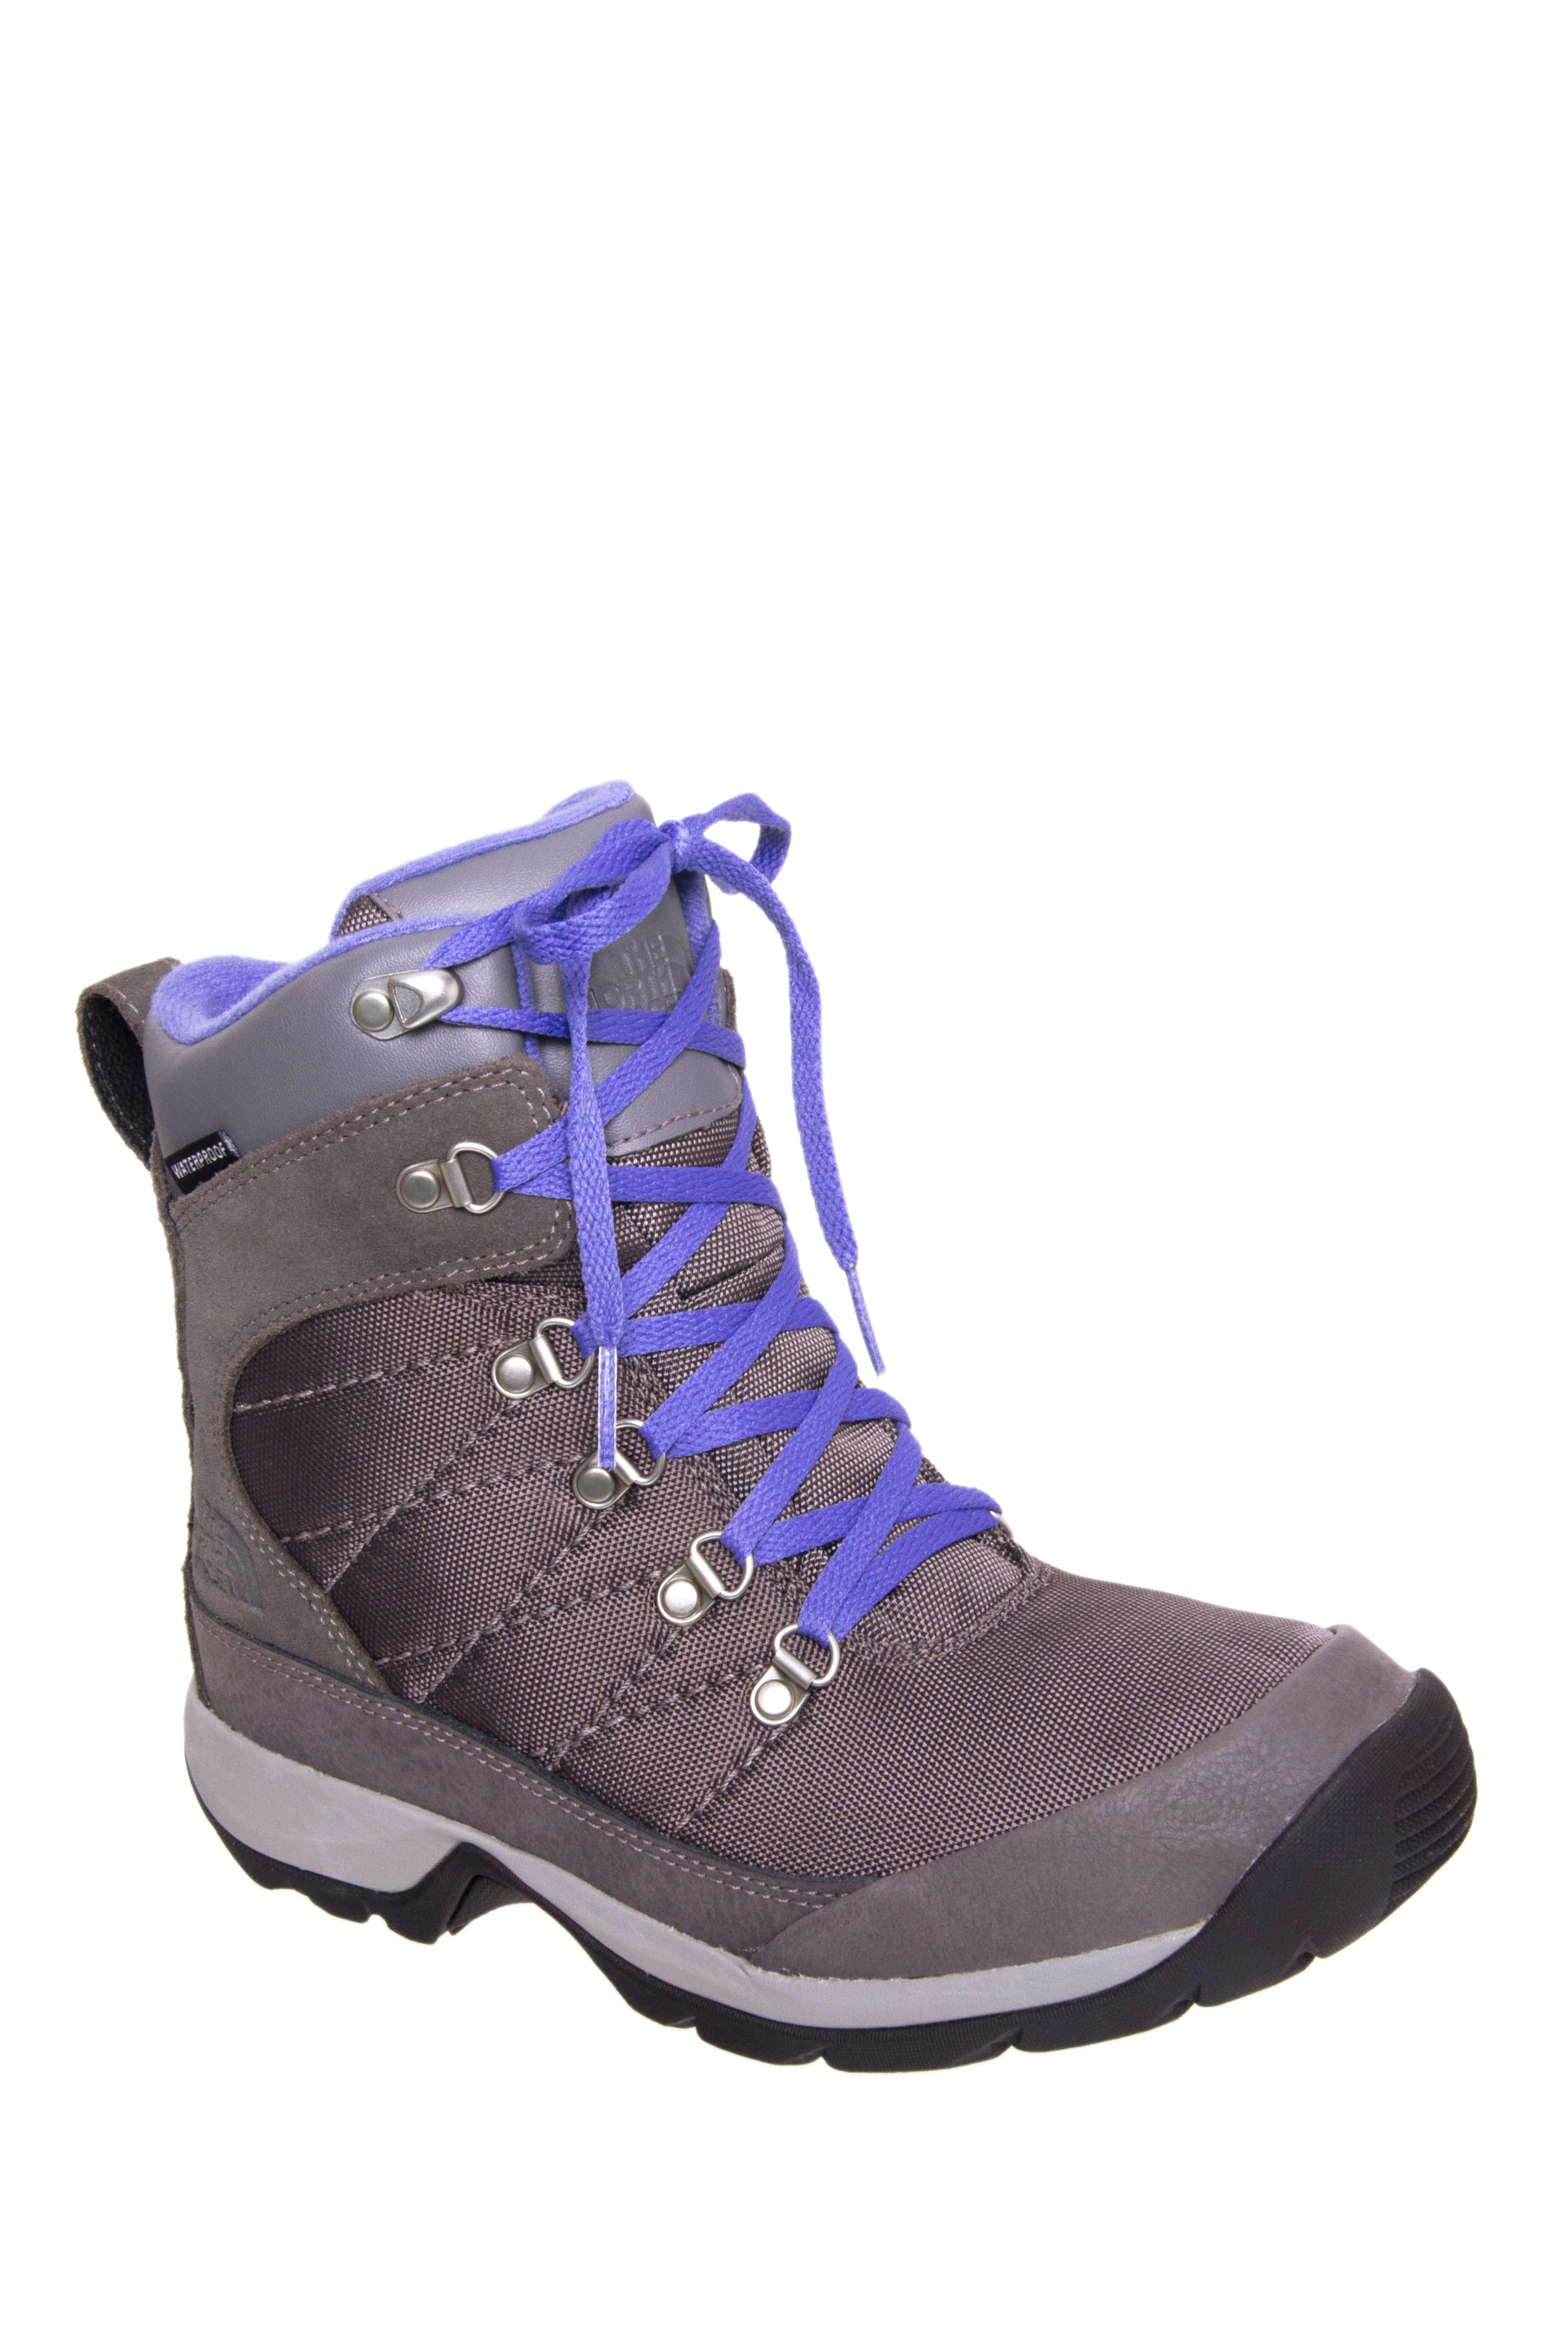 The North Face Chilkat Nylon Boots - Grey / Blue